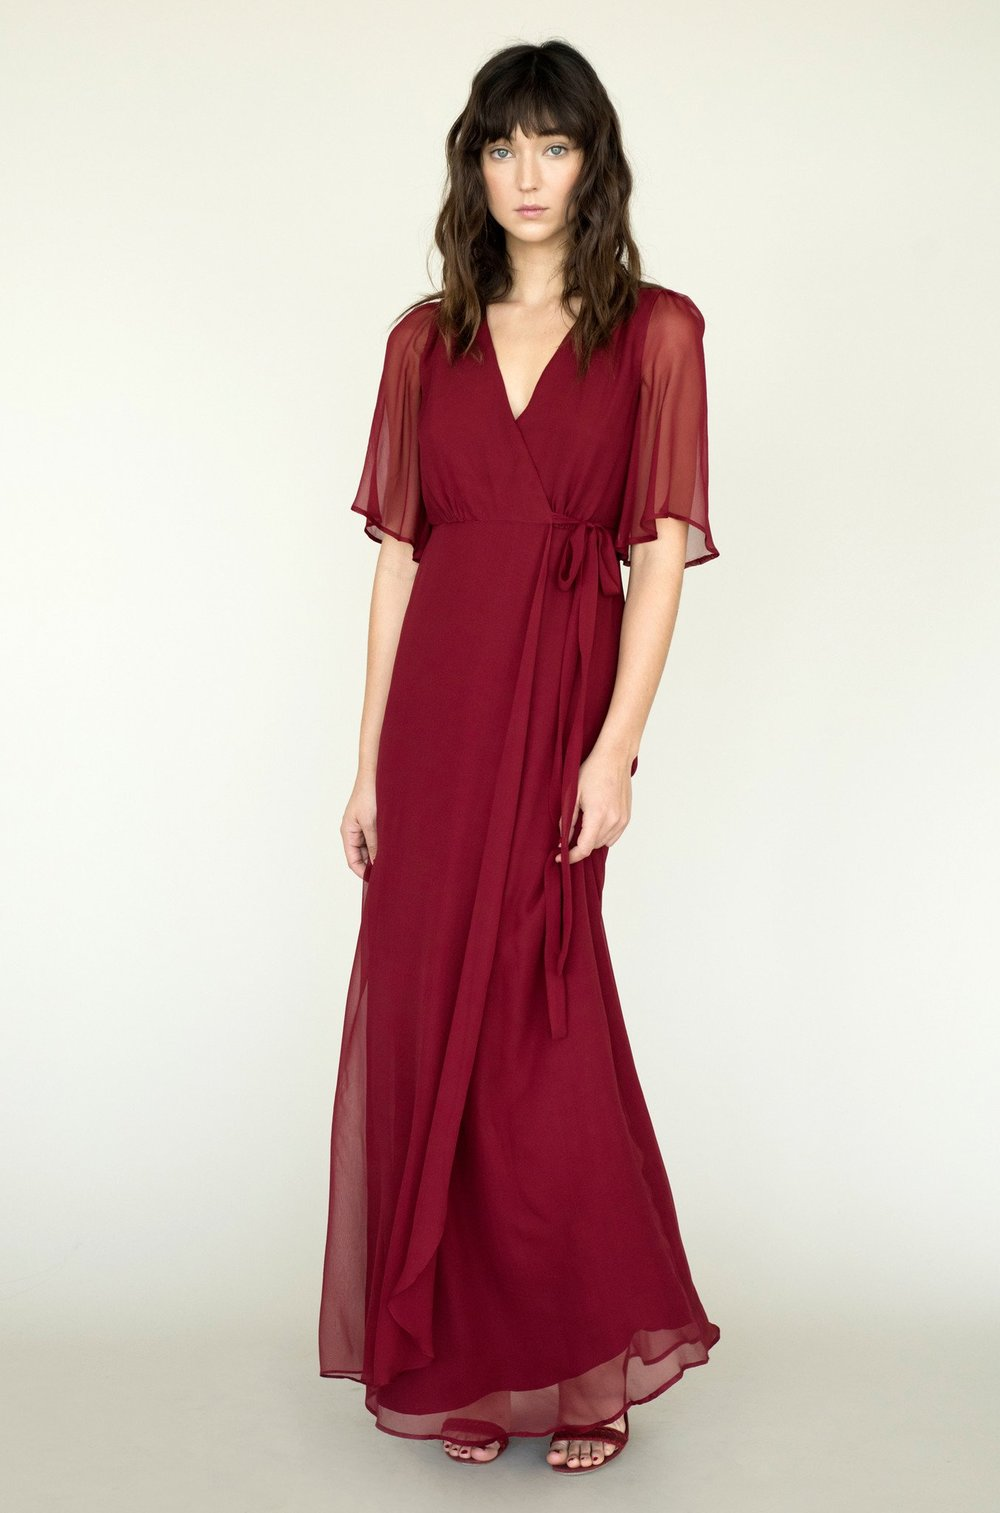 Lily Ashwell 'Aurora' dress in Crimson Silk, $450